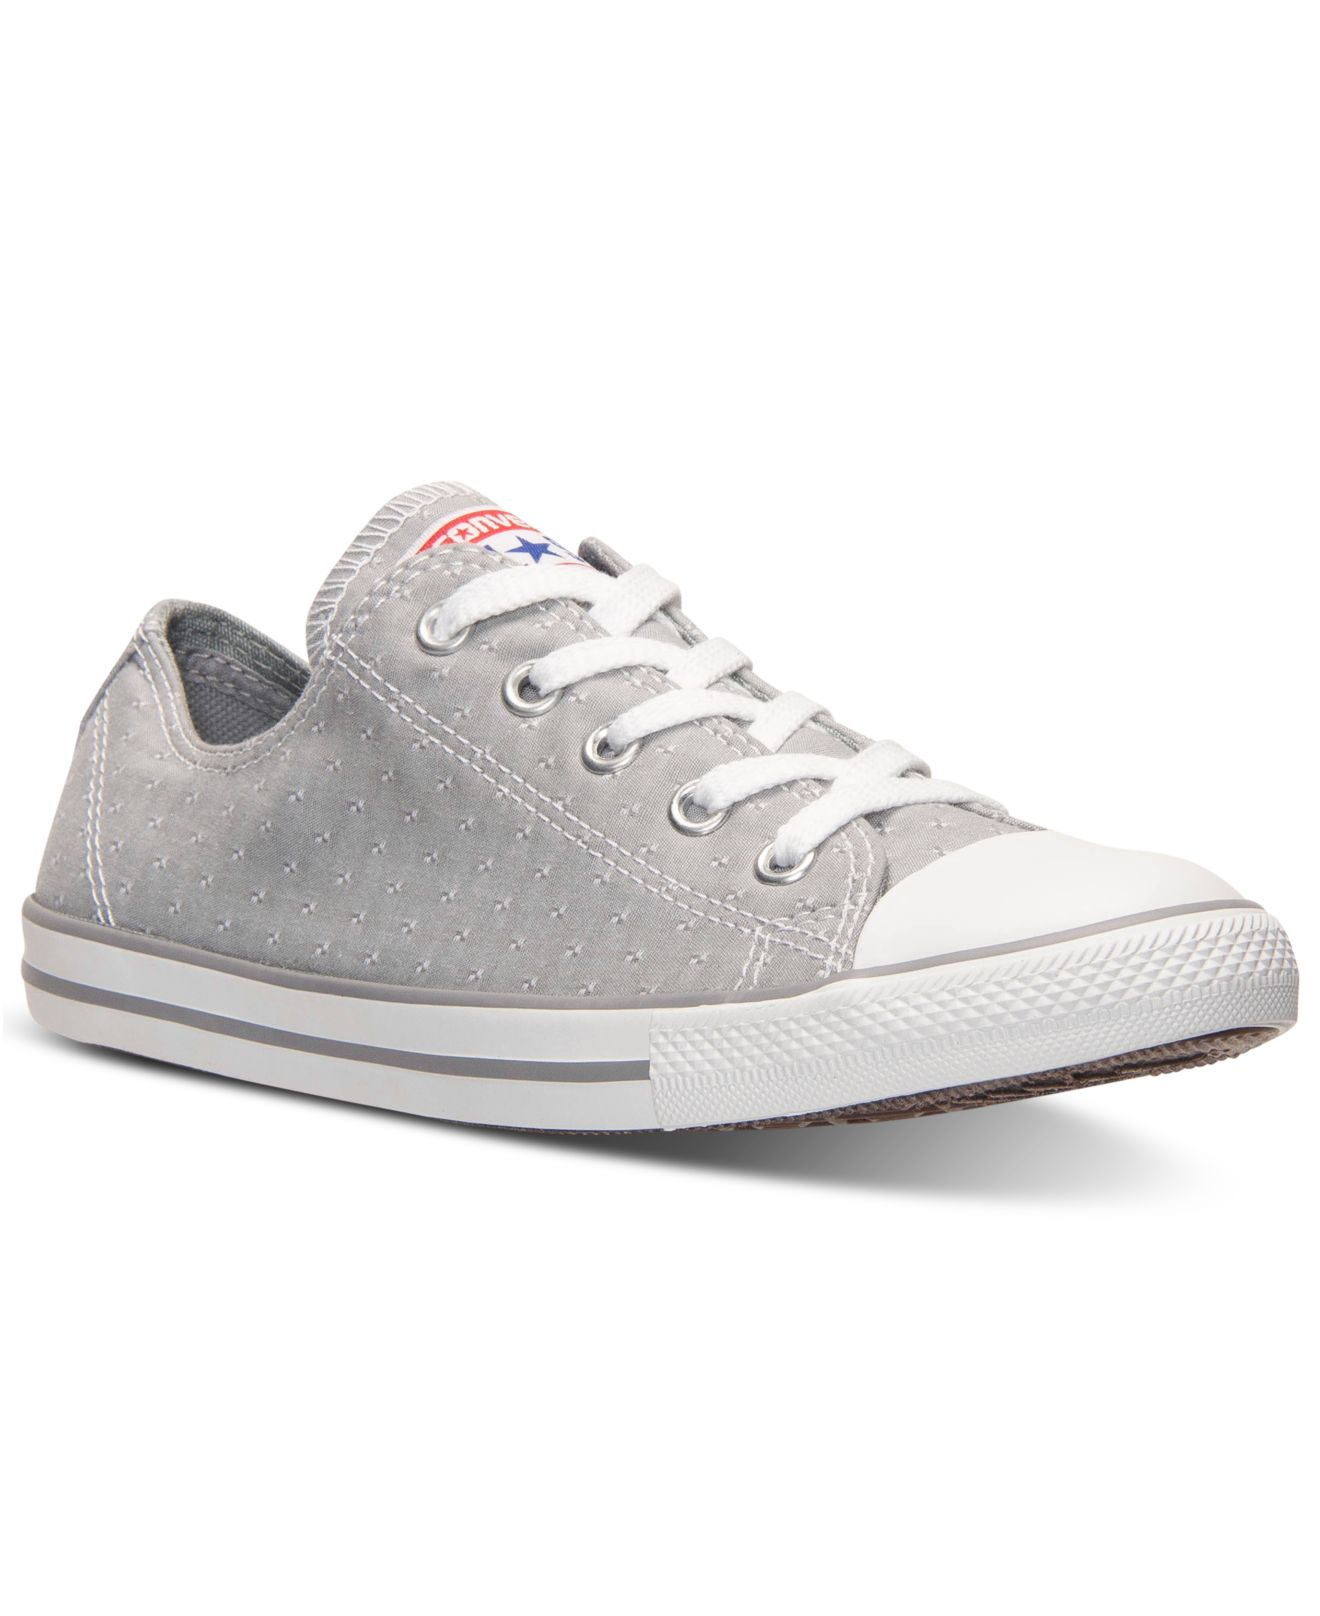 2668219fe10516 Lyst - Converse Women s Chuck Taylor Dainty Perfed Casual Sneakers ...